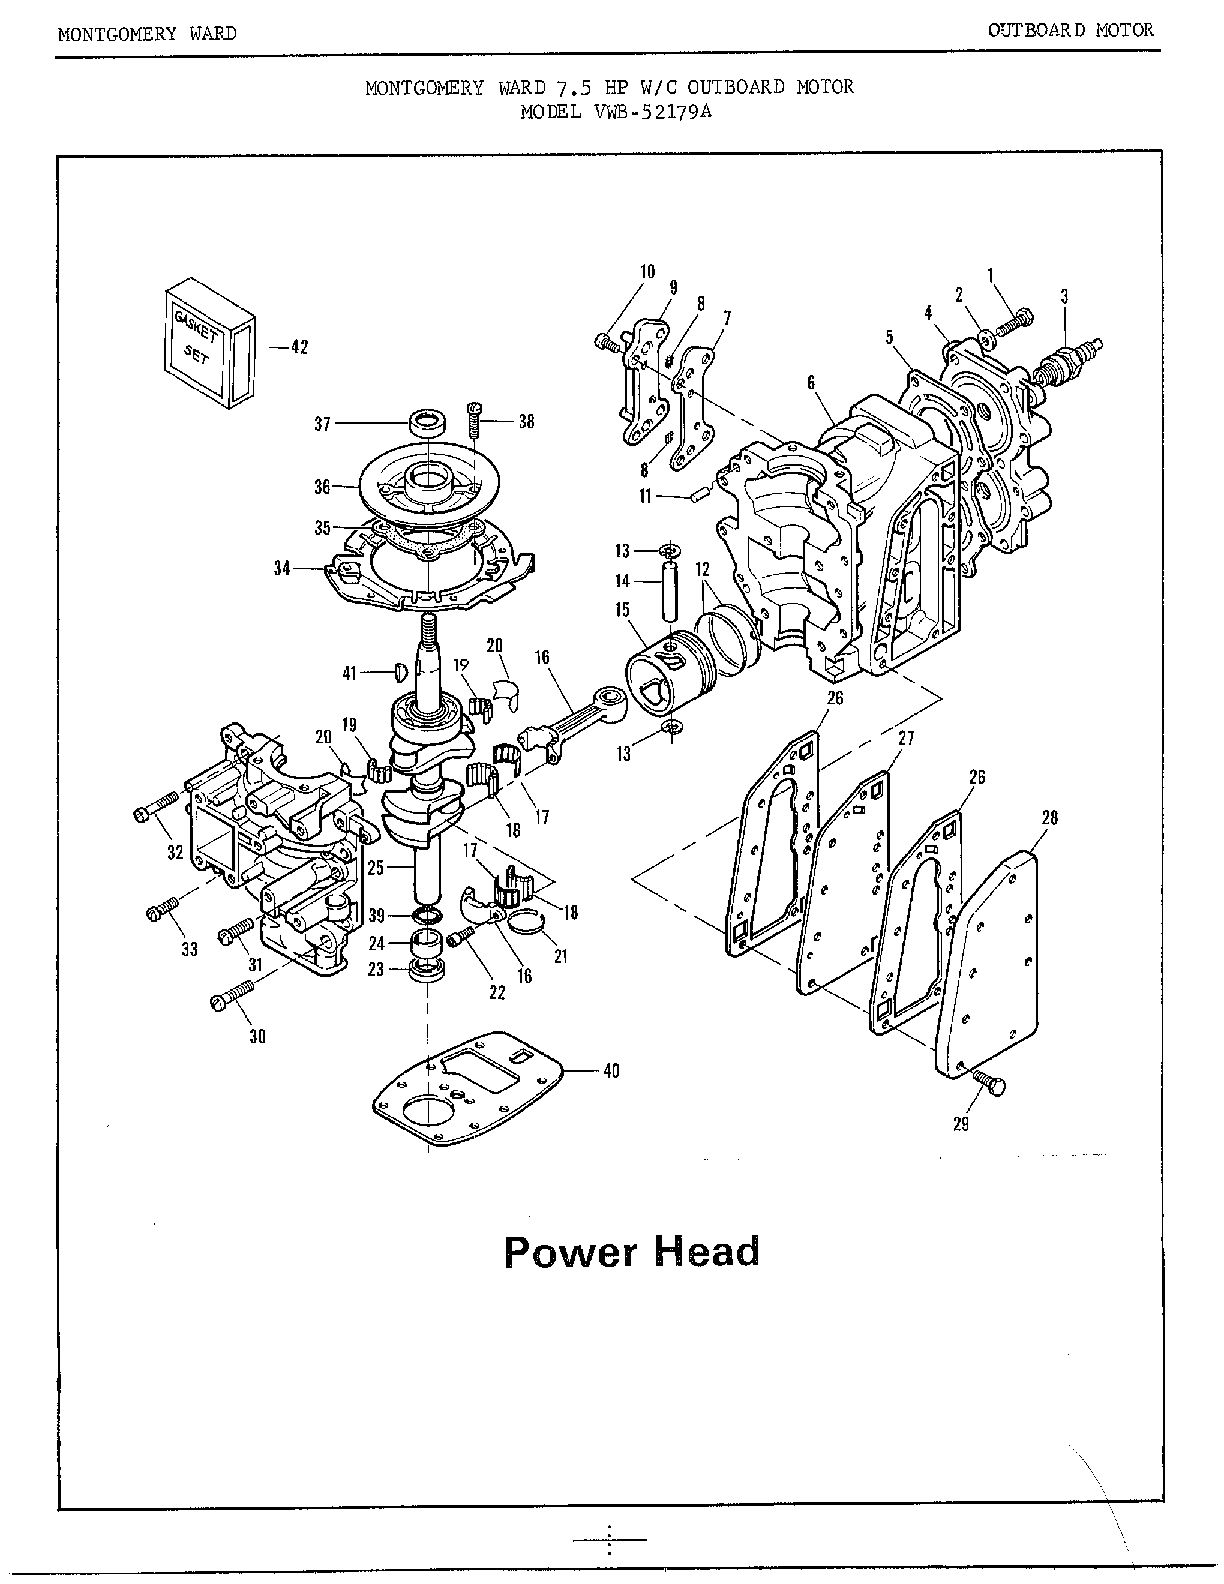 hight resolution of schematic for mercury outboard motor